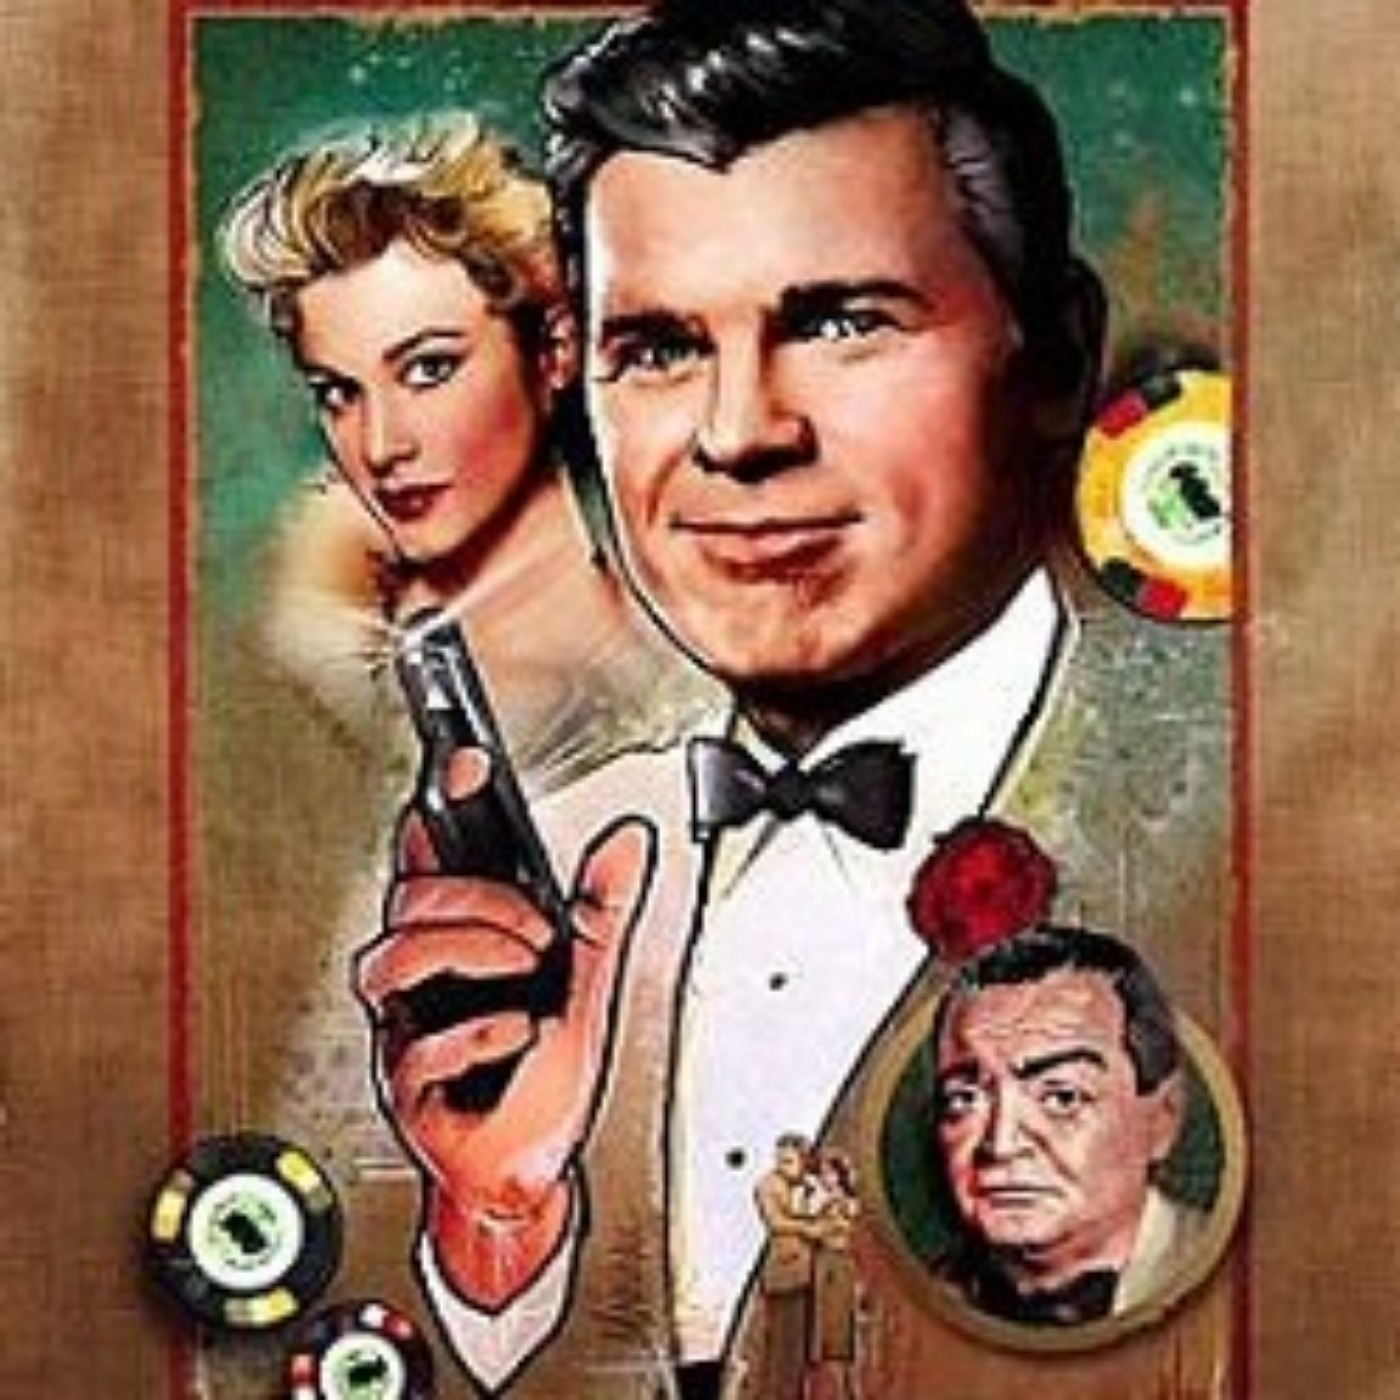 James Bond : Casino Royale version Climax 1954